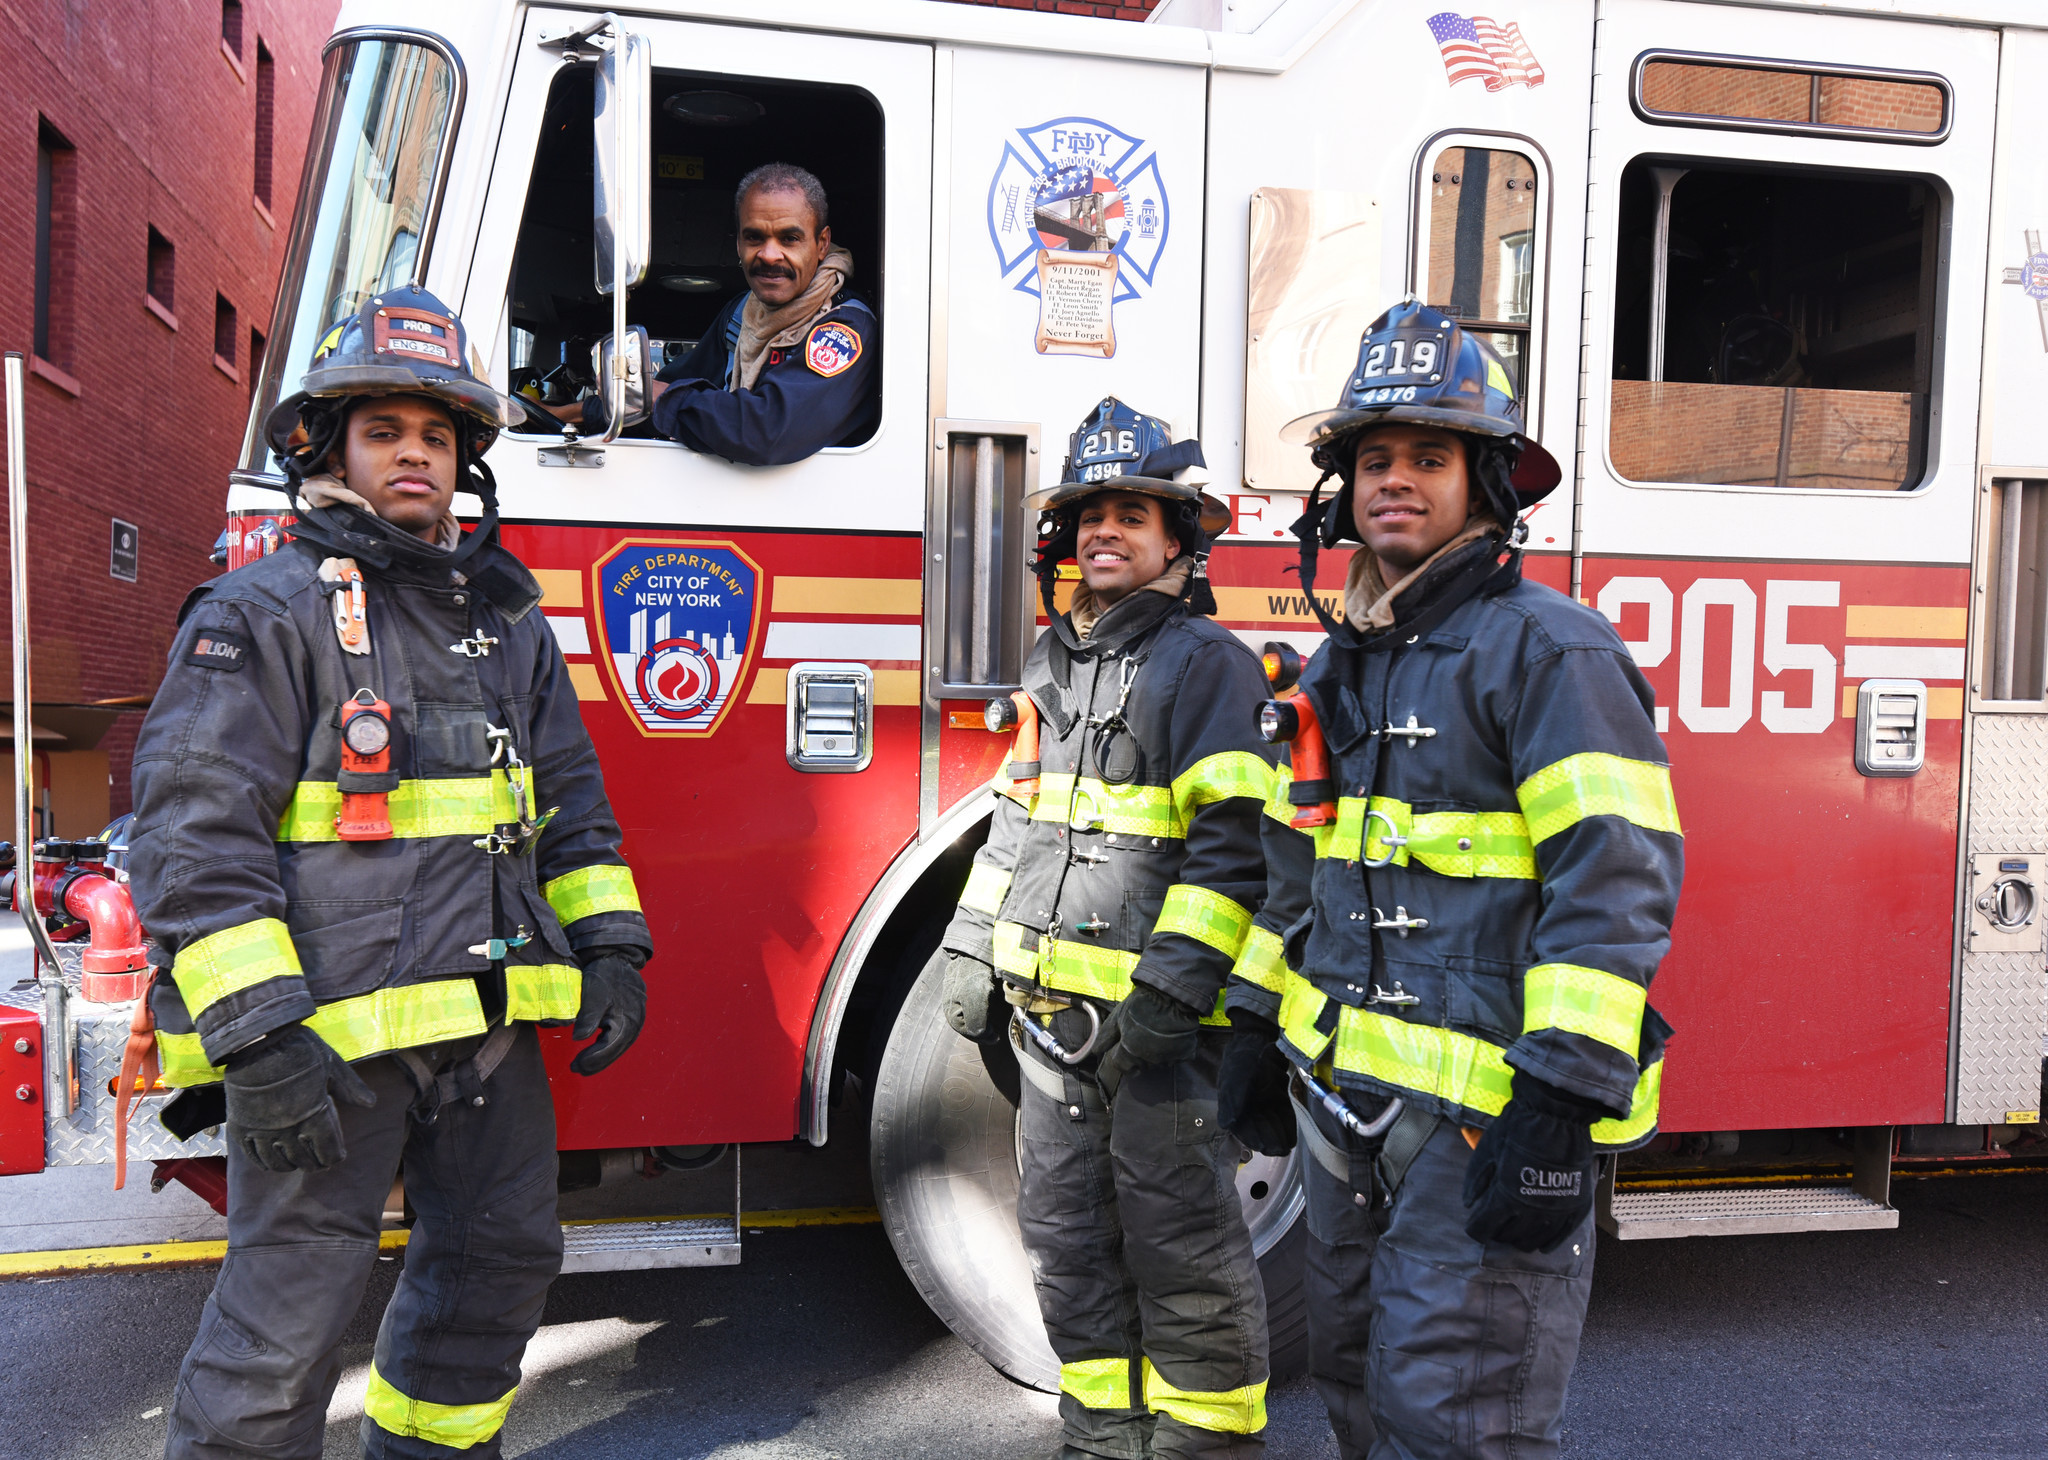 All in the family: FDNY father, three sons, fight fires and promote diversity together